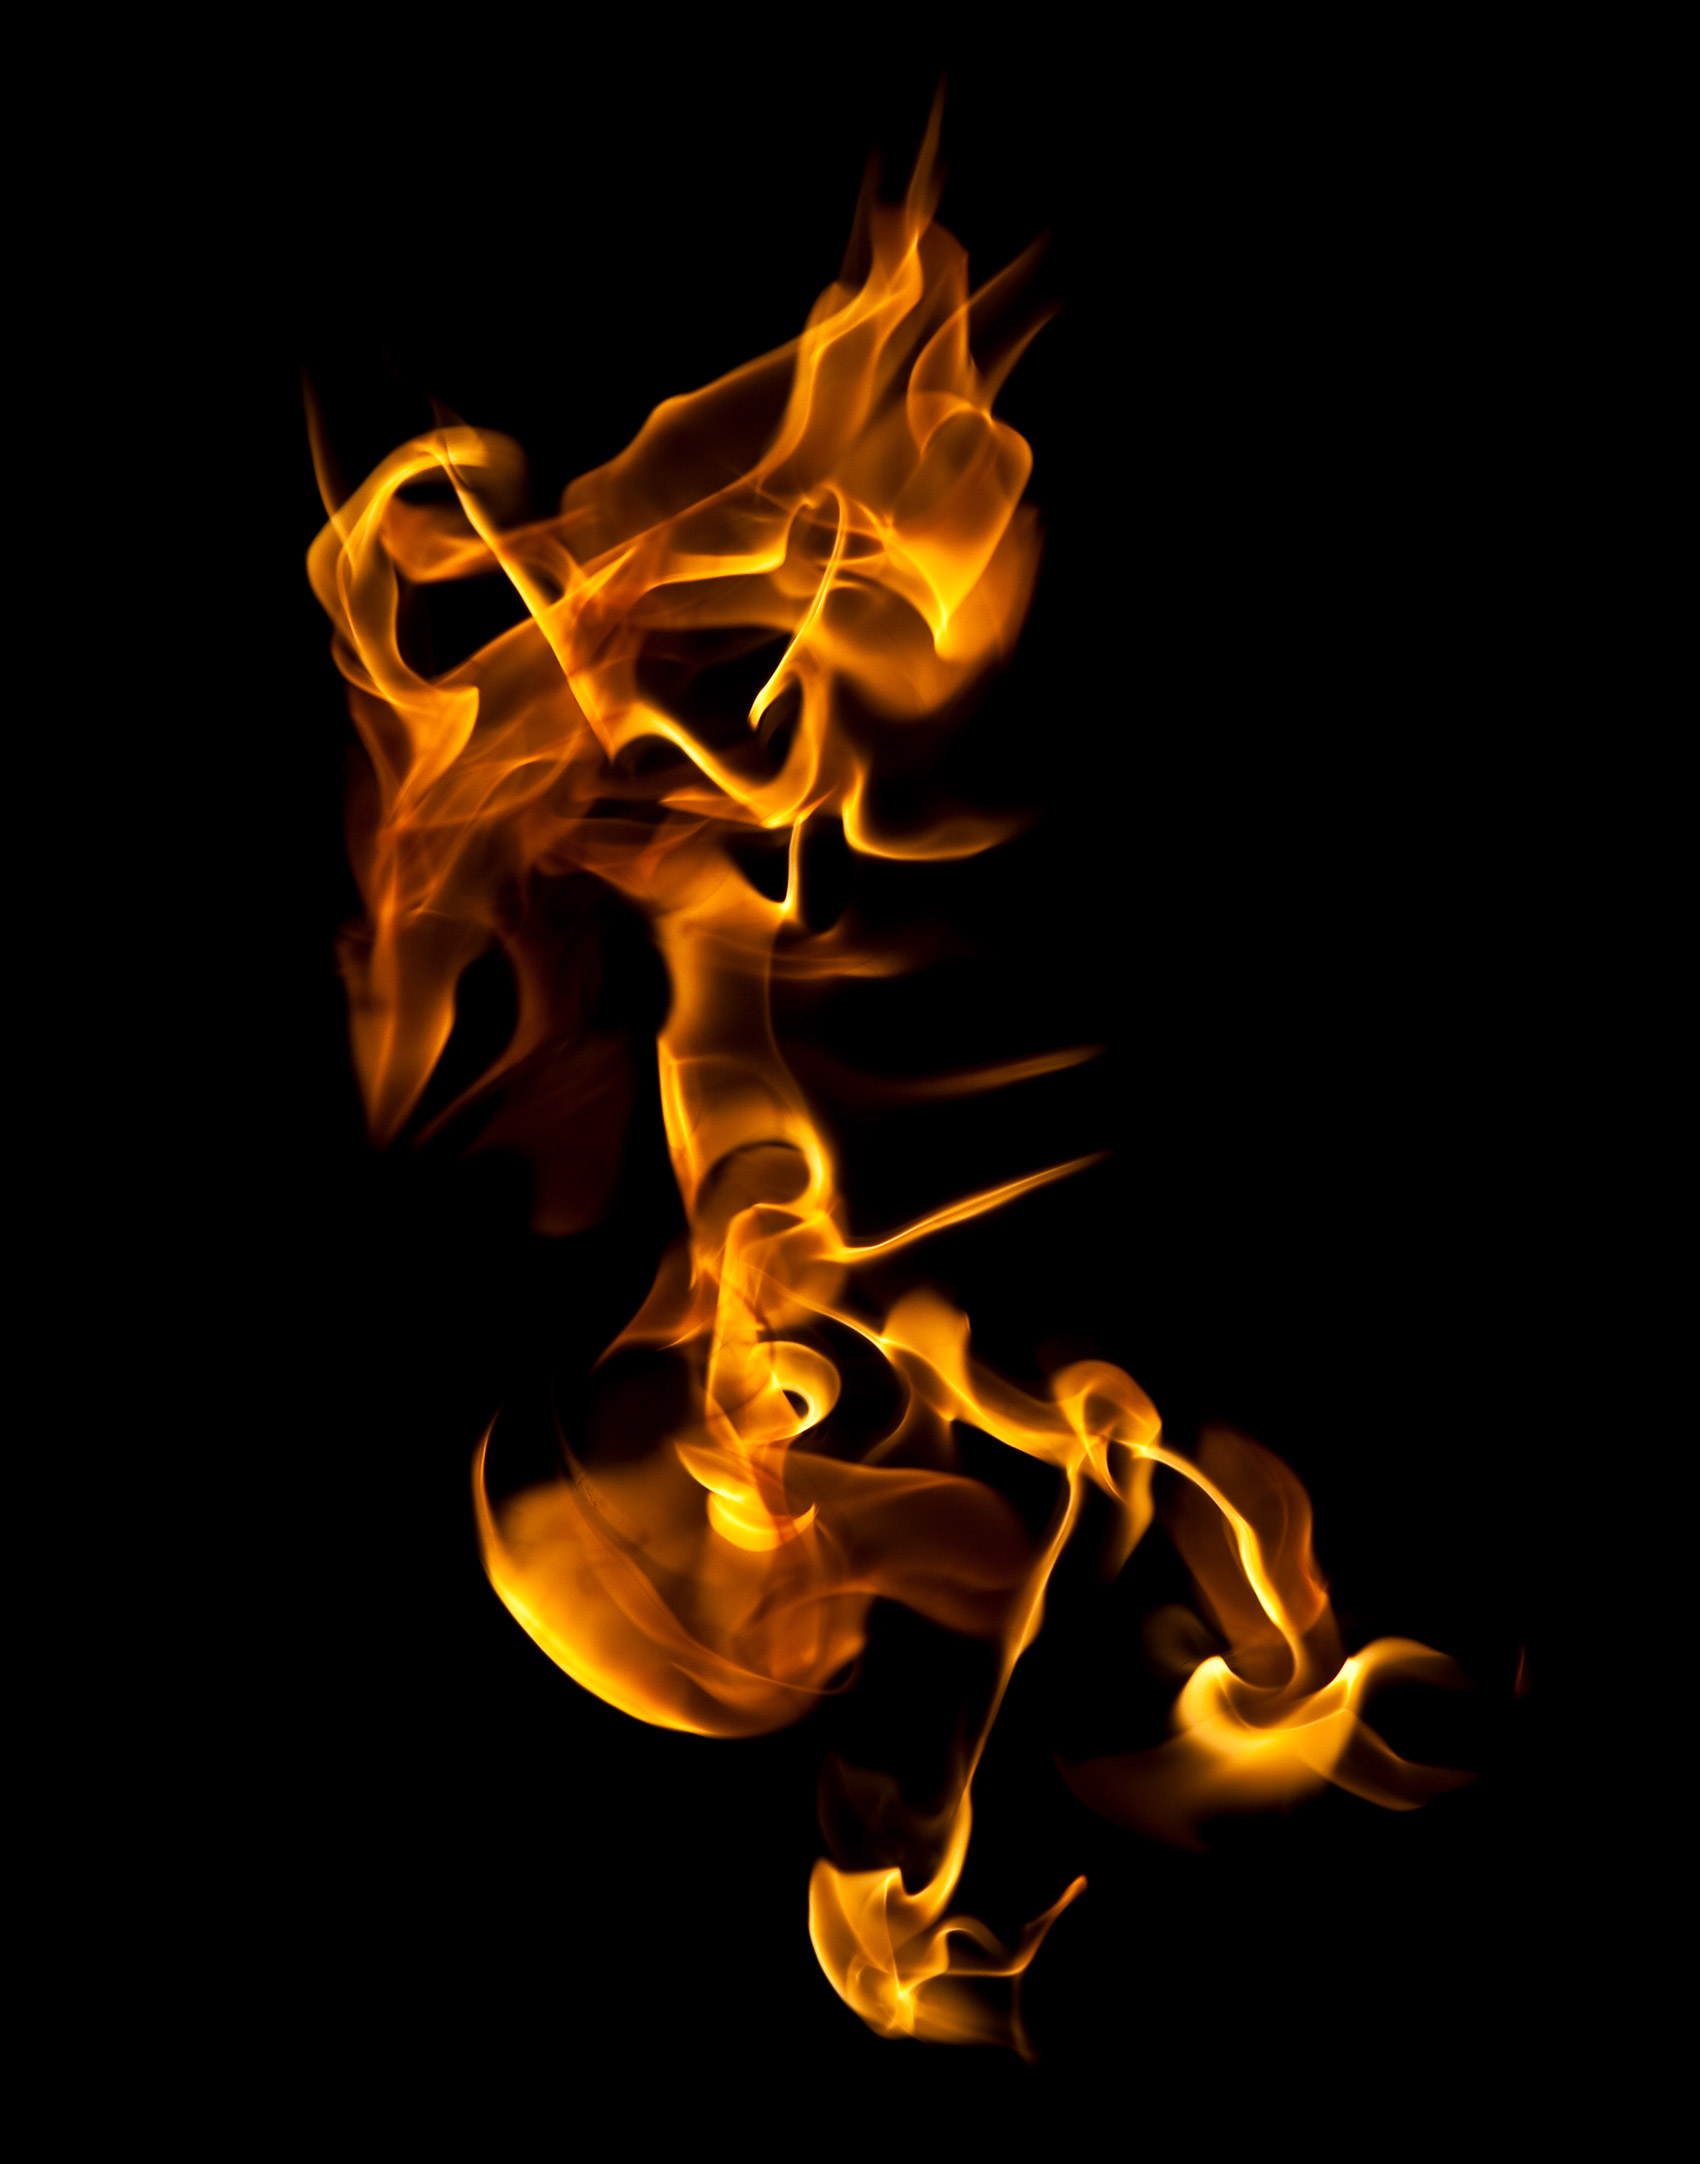 Flame Photography